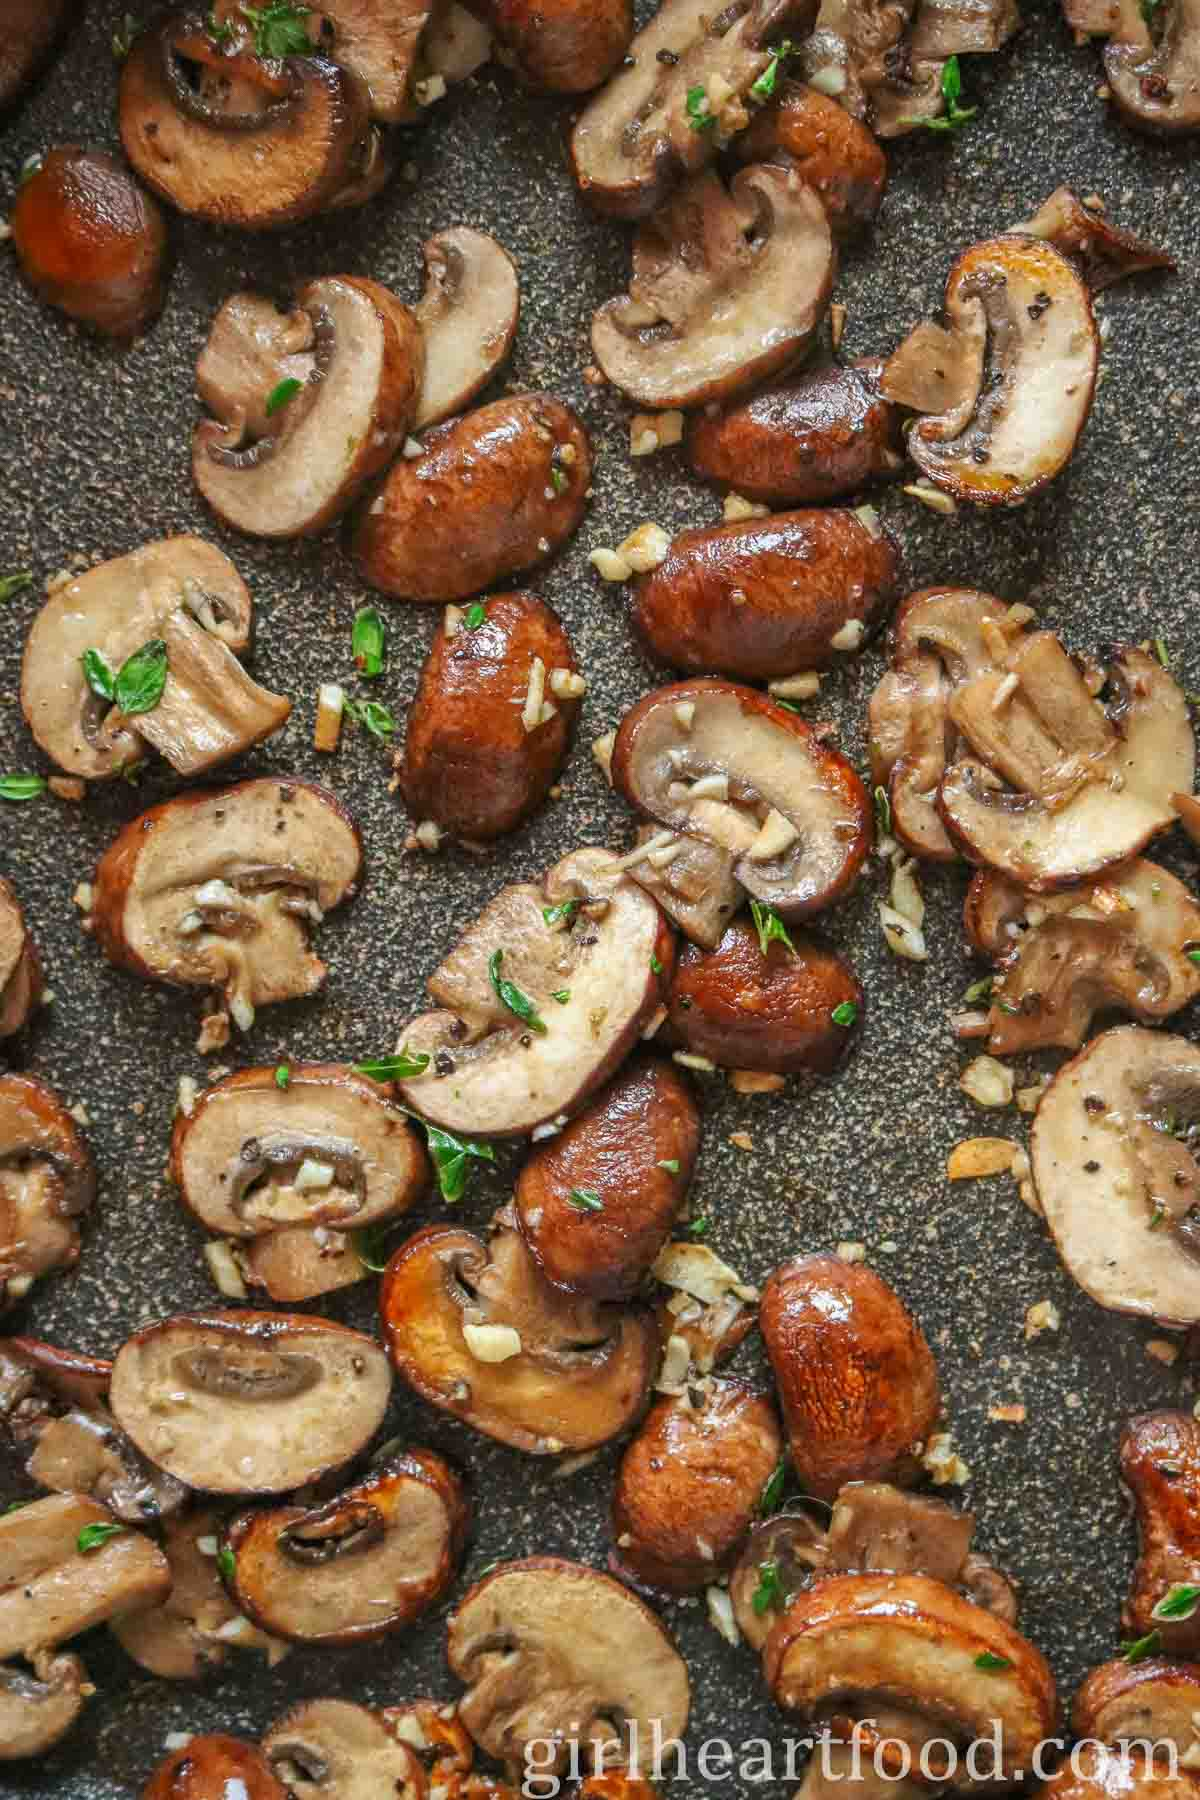 Slices of sautéed mushrooms with garlic and thyme in a non-stick pan.